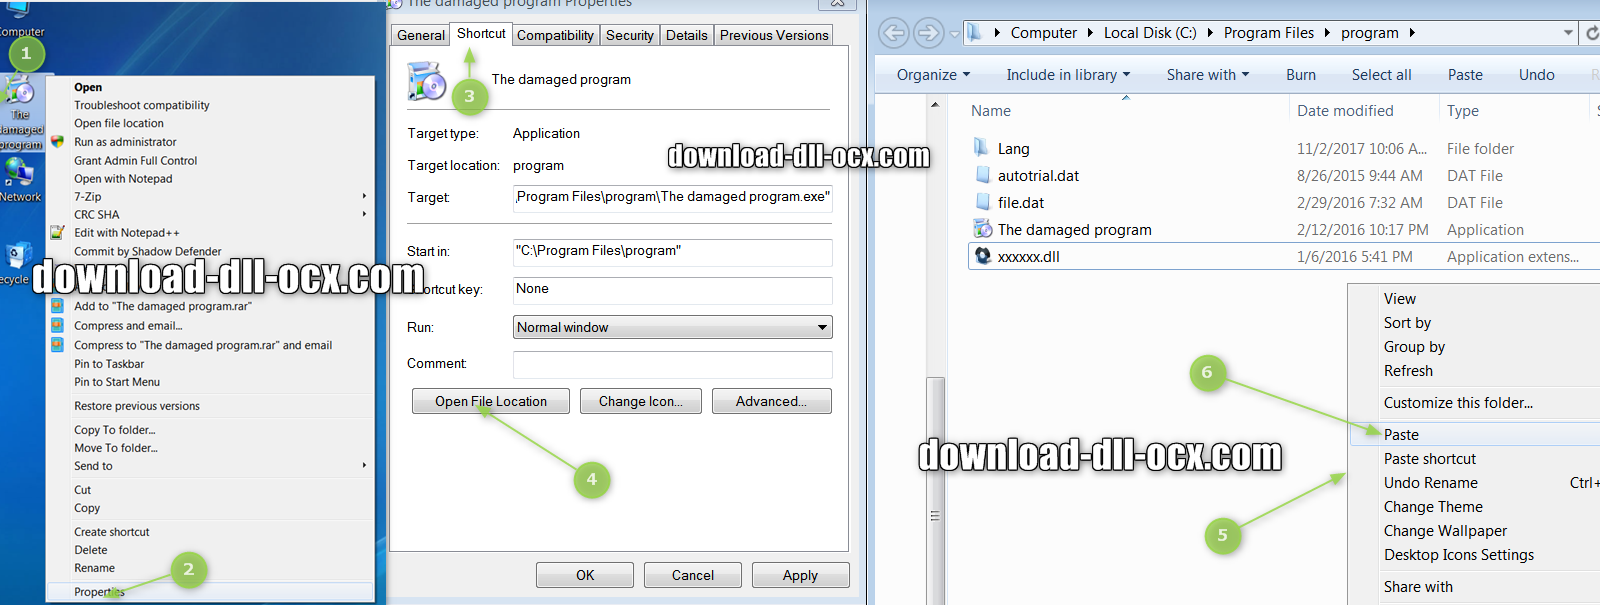 how to install Cygpixbufloader-jpeg.dll file? for fix missing